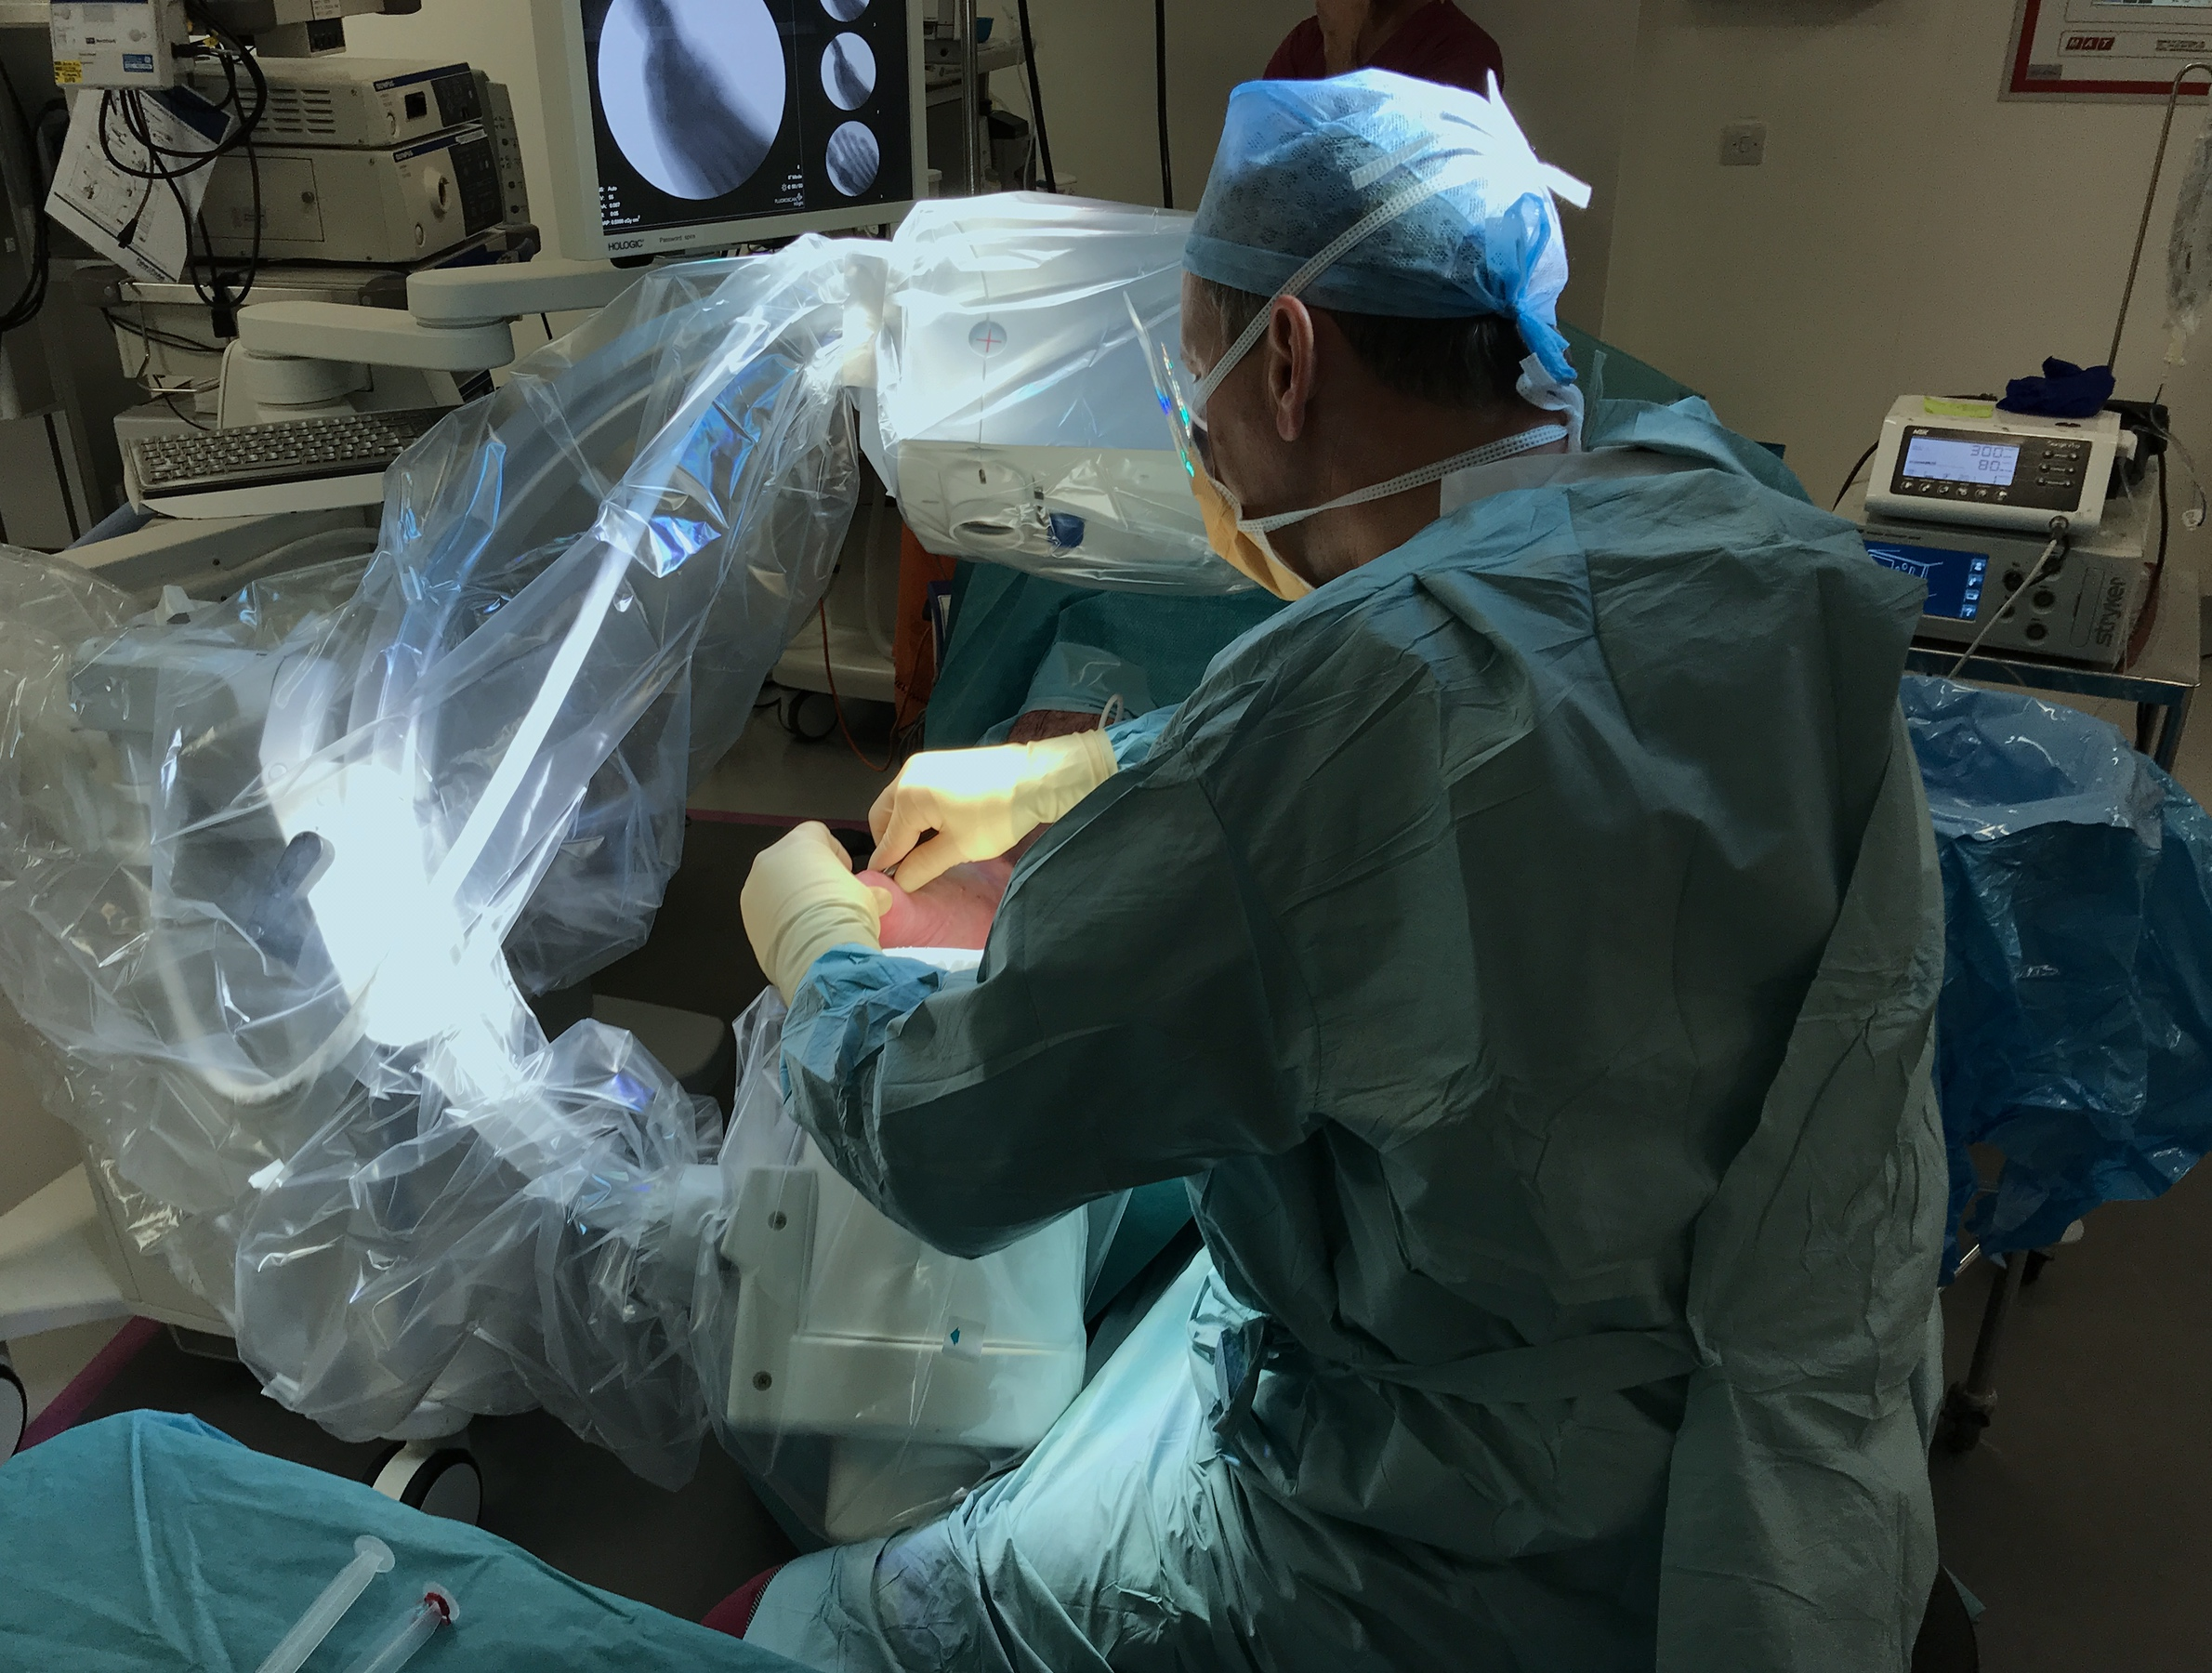 Mr Redfern performing keyhole forefoot surgery under image guidance.